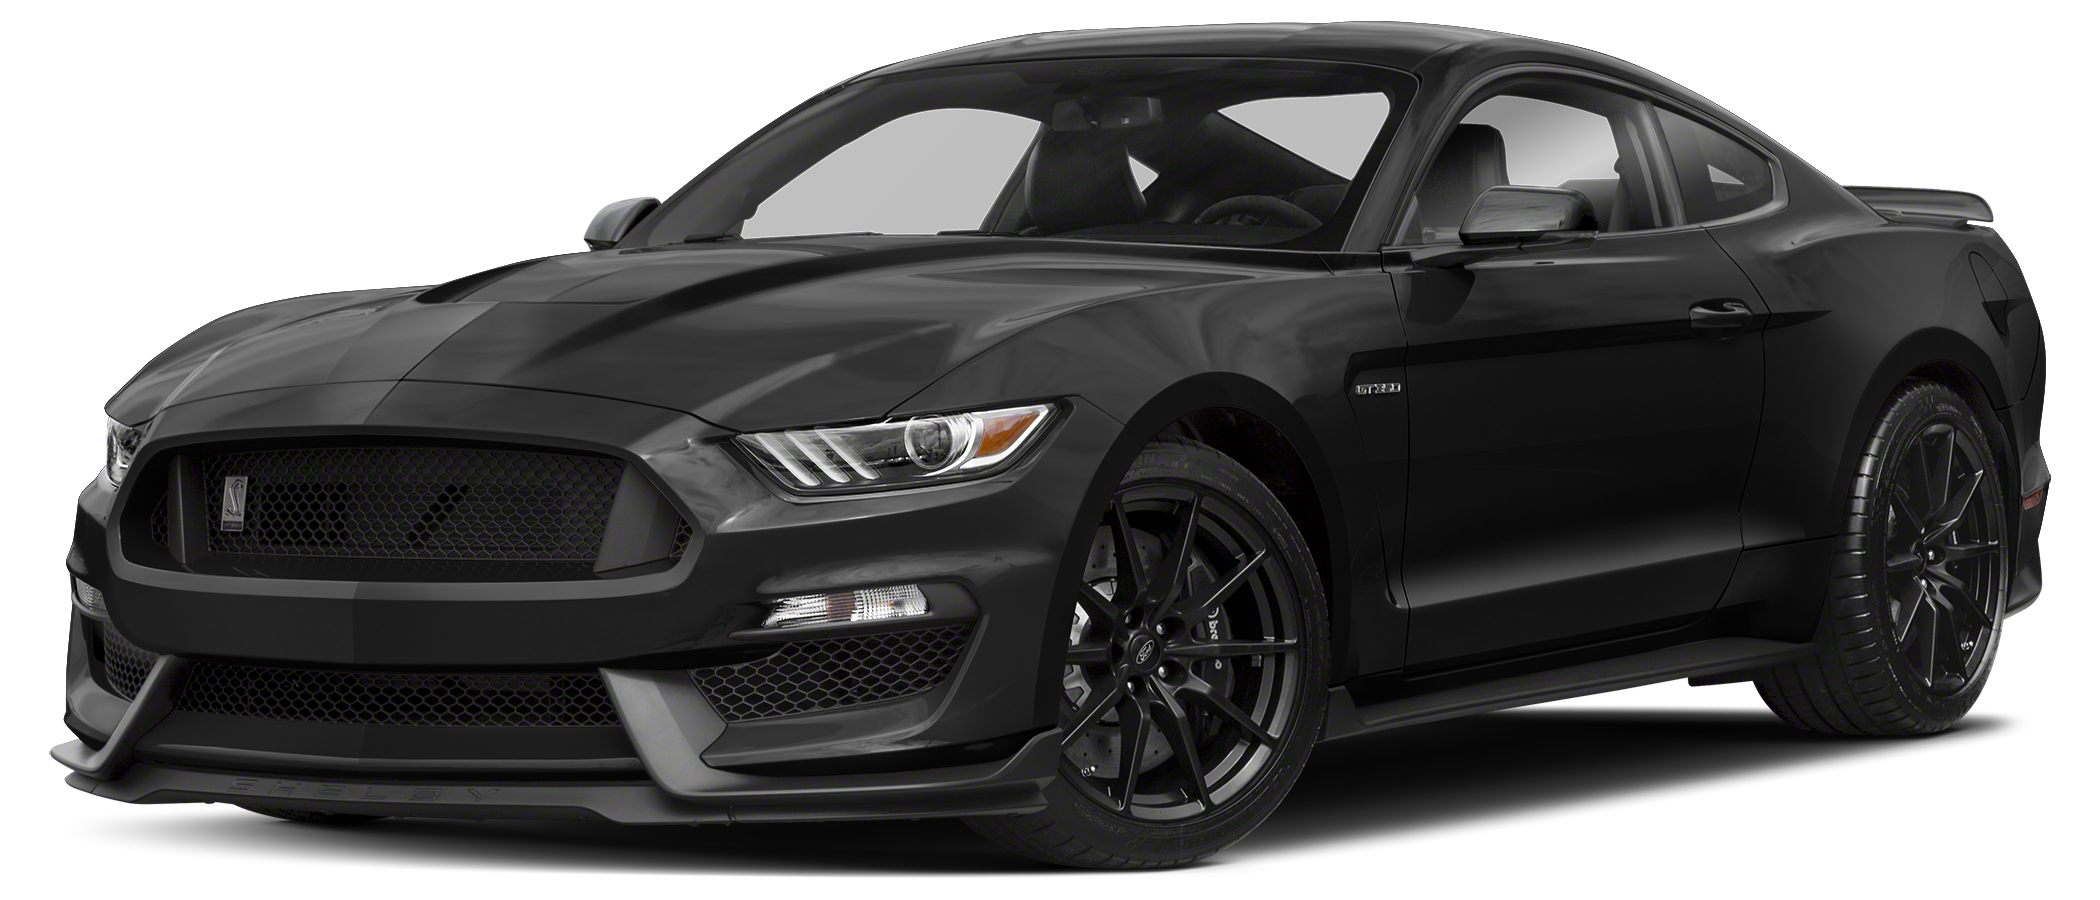 2018 Ford Mustang Shelby GT350 SHELBY GT 350 ONLY 550 MILES LEAD FOOT GRAY WITH PAINTED BLACK RO